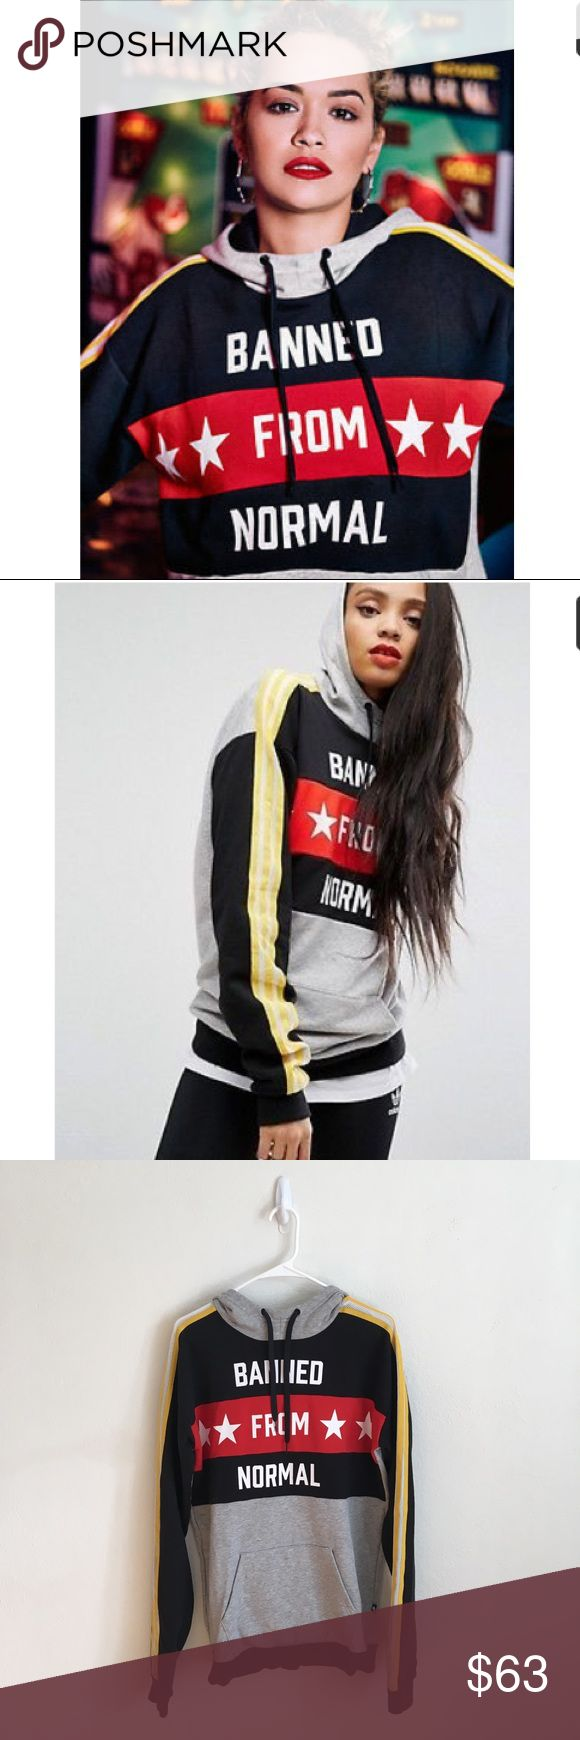 """Adidas by Rita Ora Hoodie 🖤❤️💛 Size XS oversized hoodie, fits like a M I'd say. Excellent condition, worn once. Screen print """"banned from normal"""" text. Warm and edgy hoodie. adidas Tops Sweatshirts & Hoodies"""